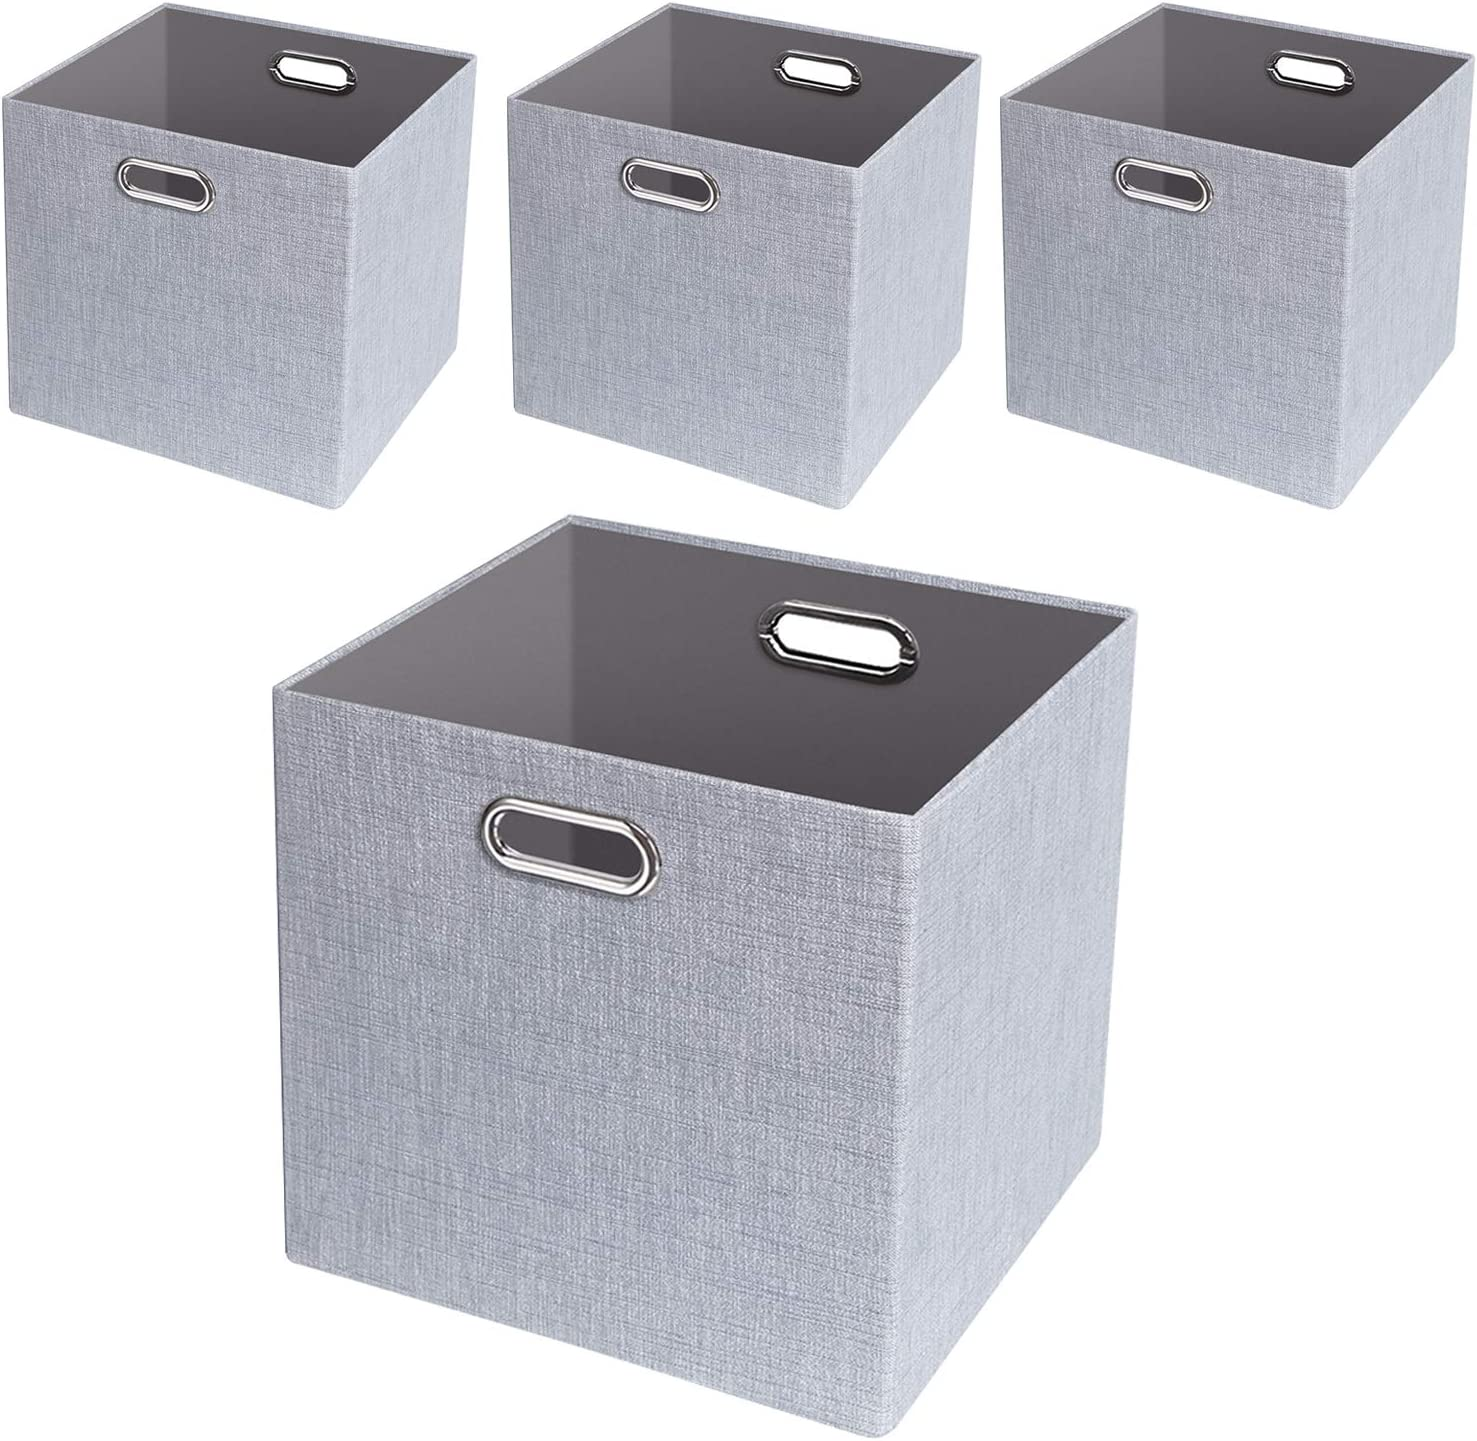 Amazon Com Posprica Foldable Storage Bins 11 11 Fabric Storage Boxes Drawers Cubes Container Thick And Heavy Duty Organizer Baskets 4pcs Sliver Grey Home Kitchen